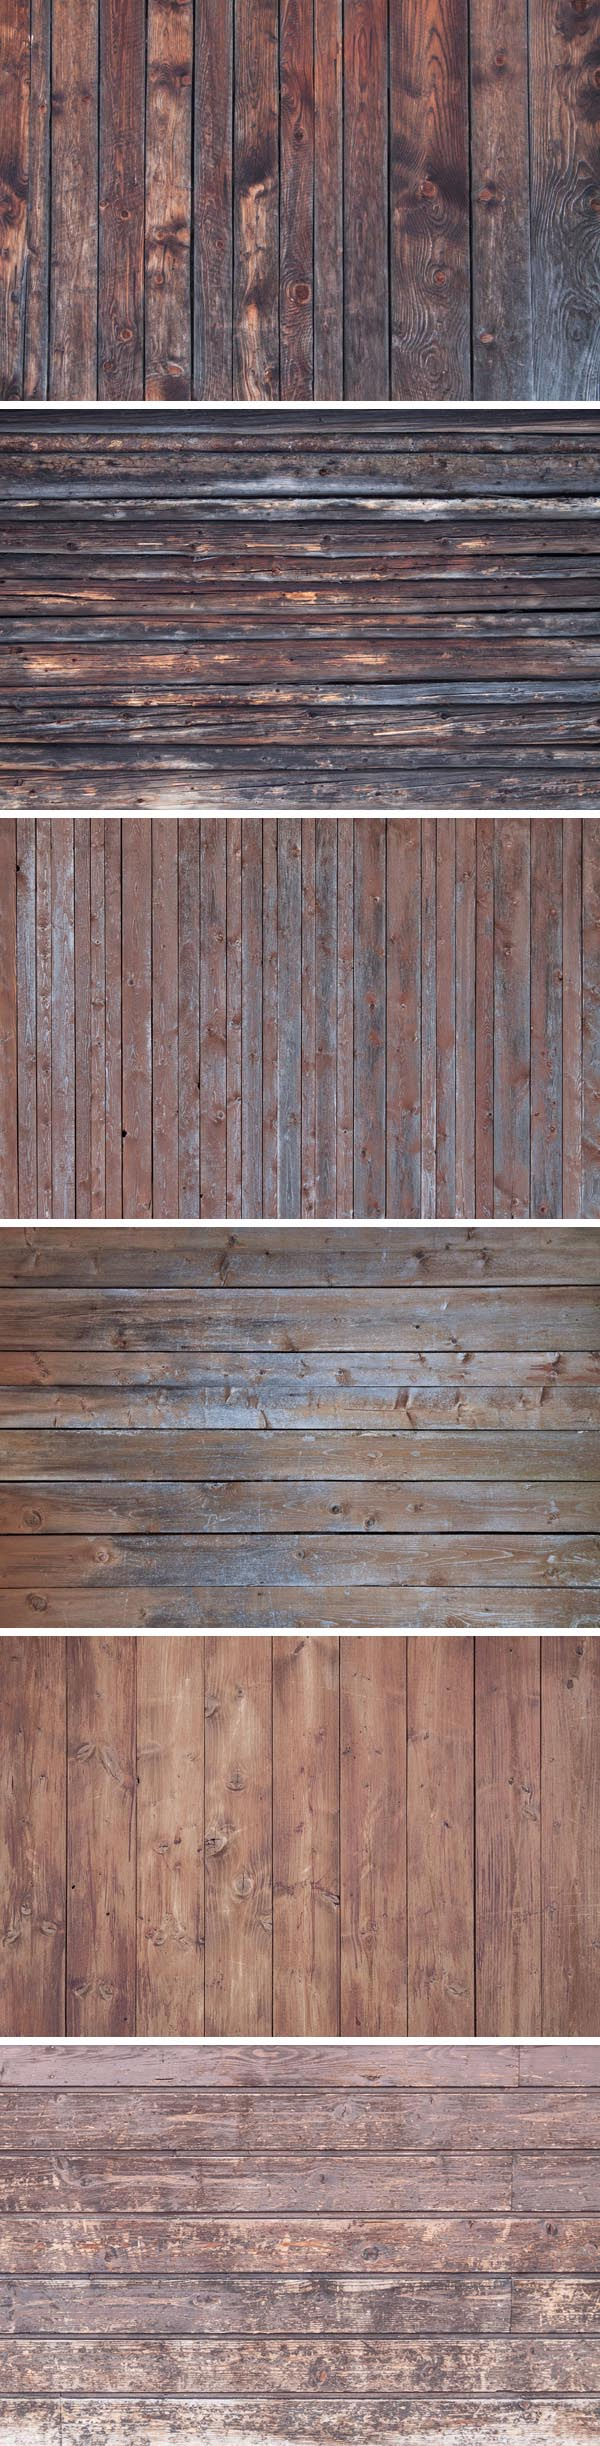 6 Free Vintage Wood Textures Backgrounds